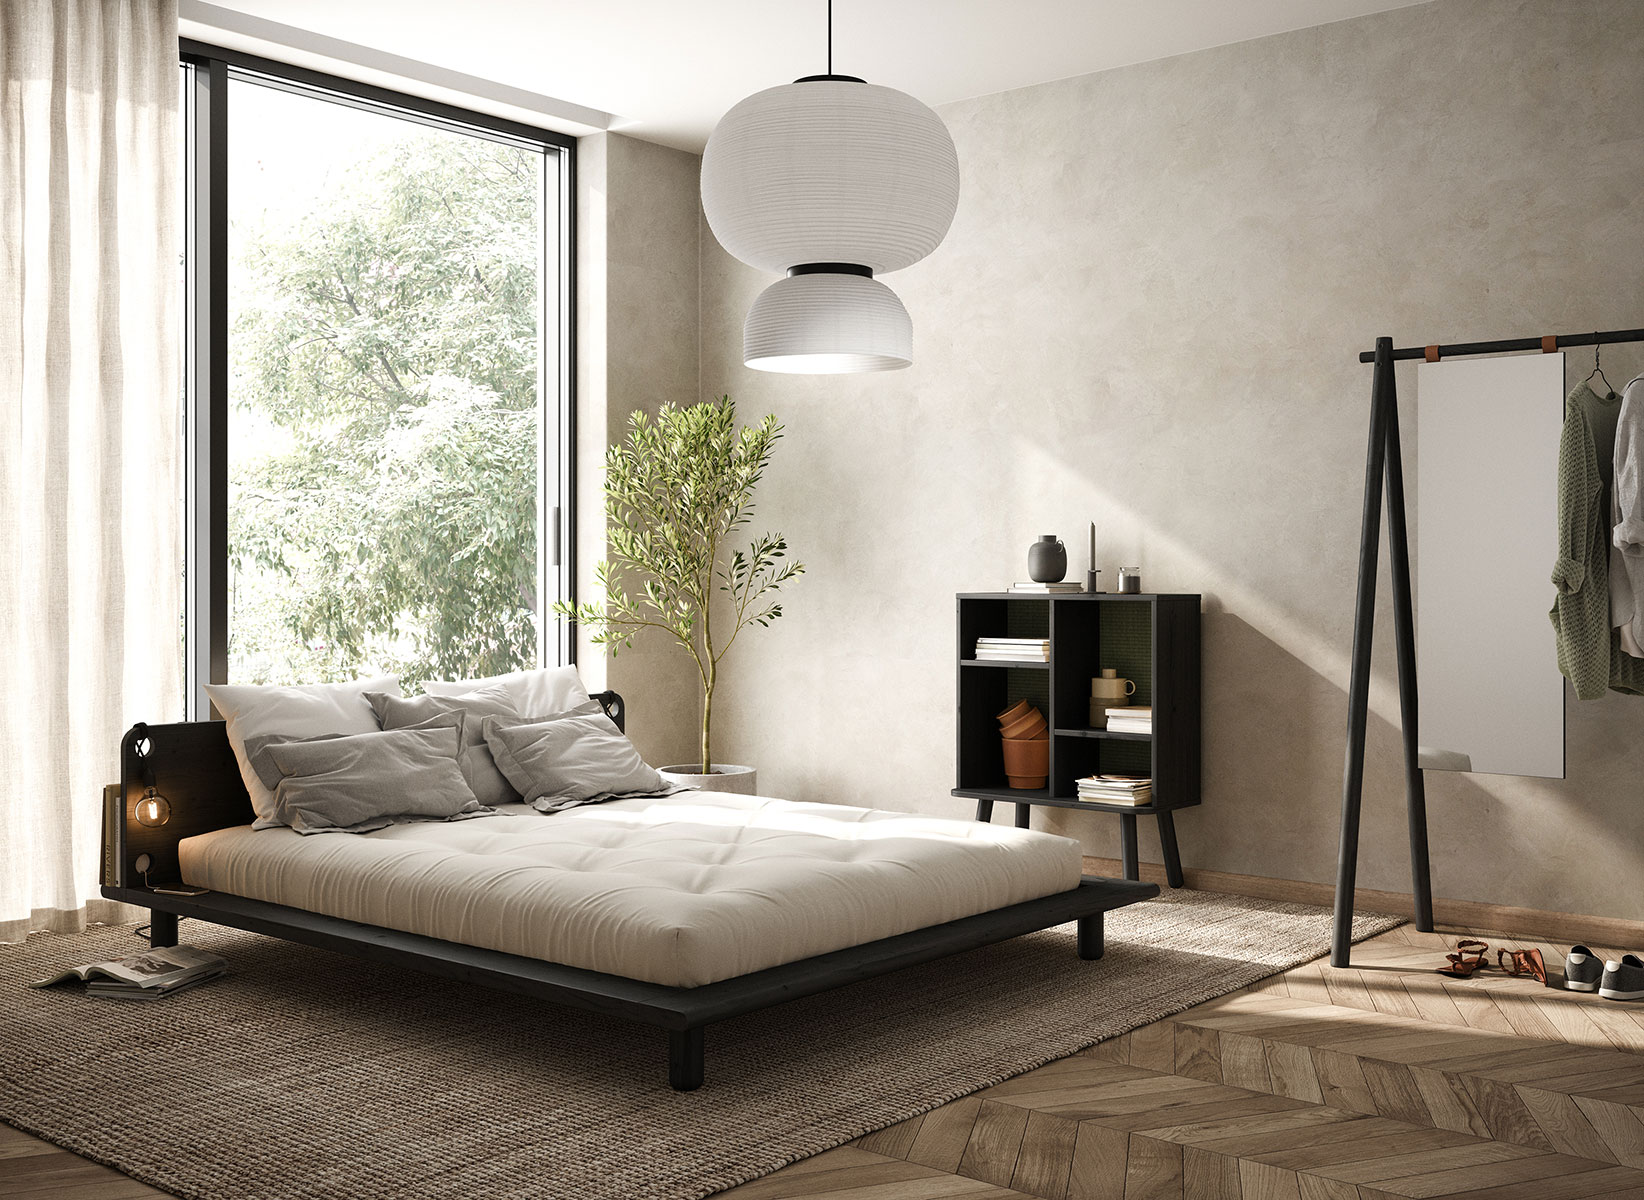 KARUP DESIGN Postel s matrací a nočními lampami Peek 140  Lamps  Double Latex Mat – BlackNatural